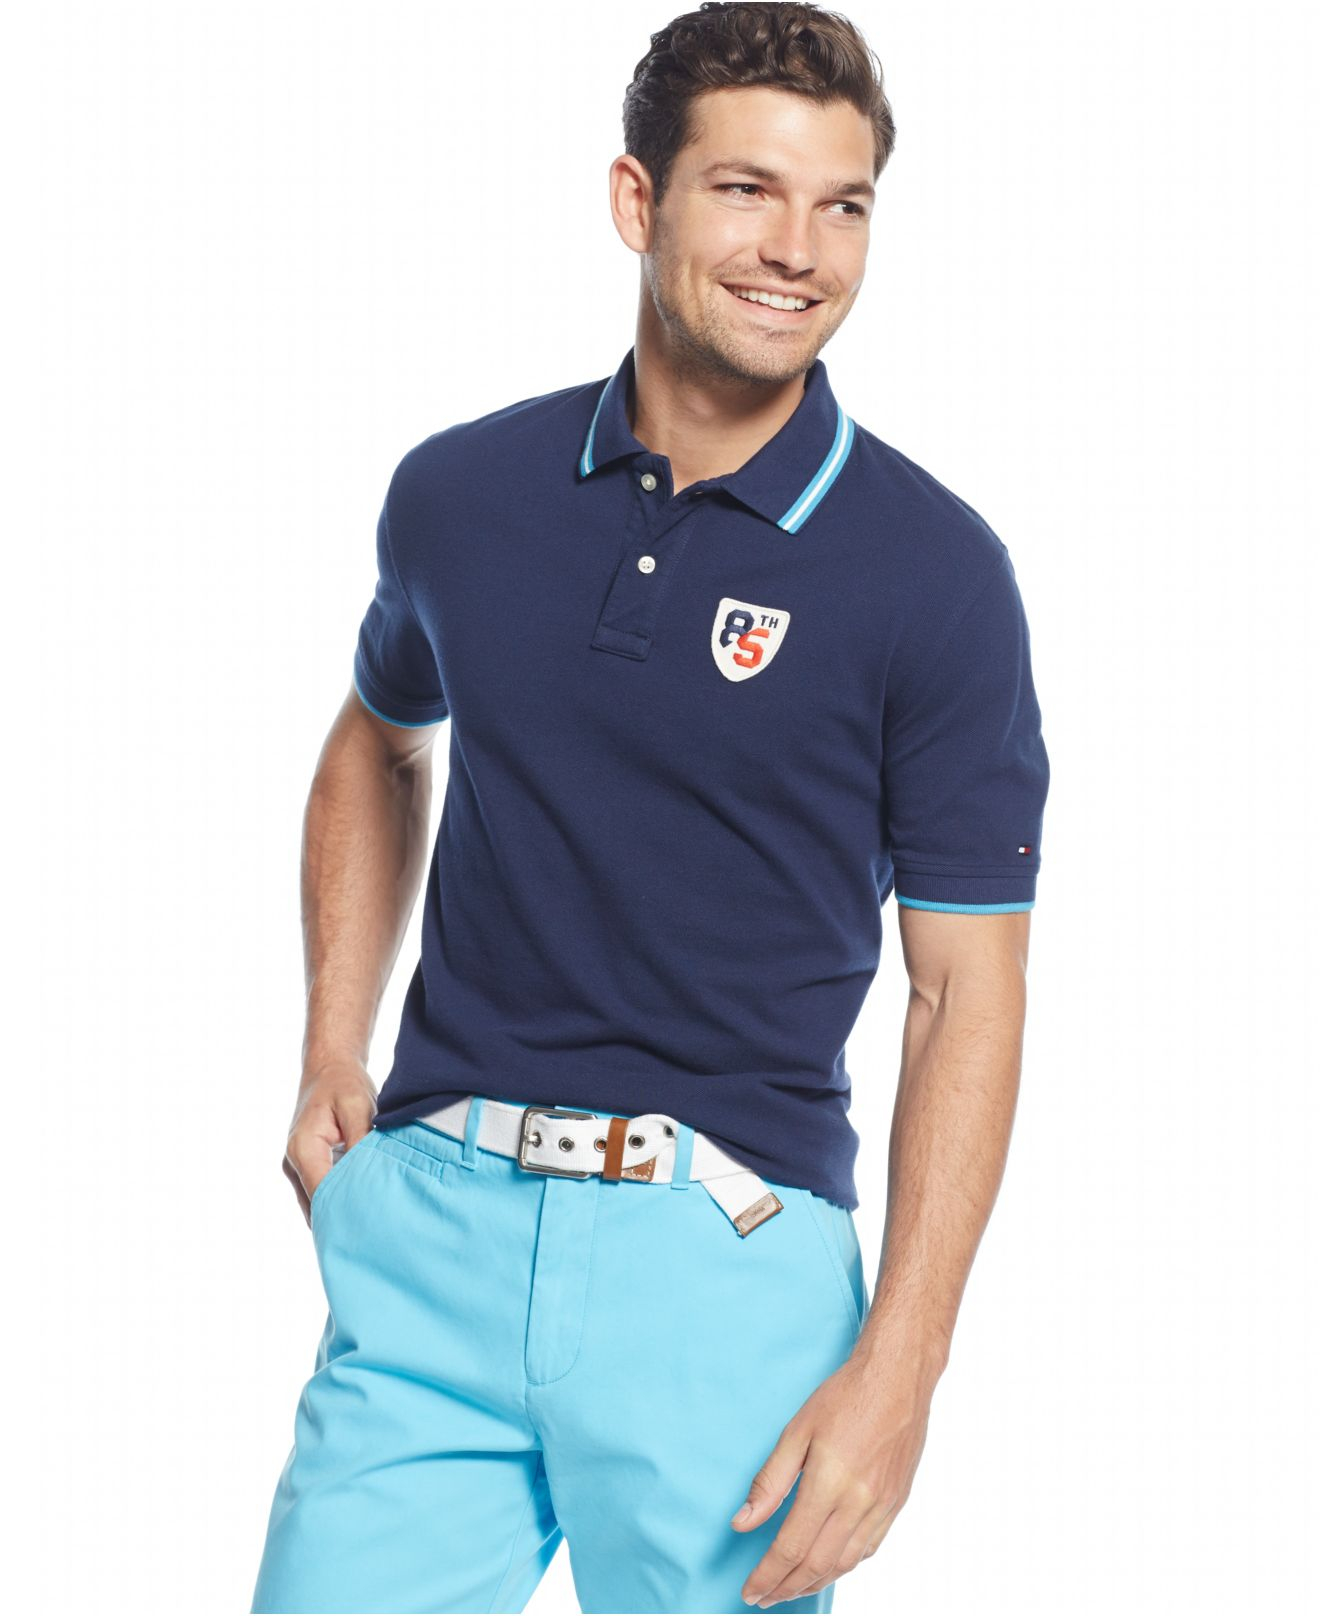 Tommy hilfiger toby classic fit polo in blue for men for Tommy hilfiger vintage fit shirt